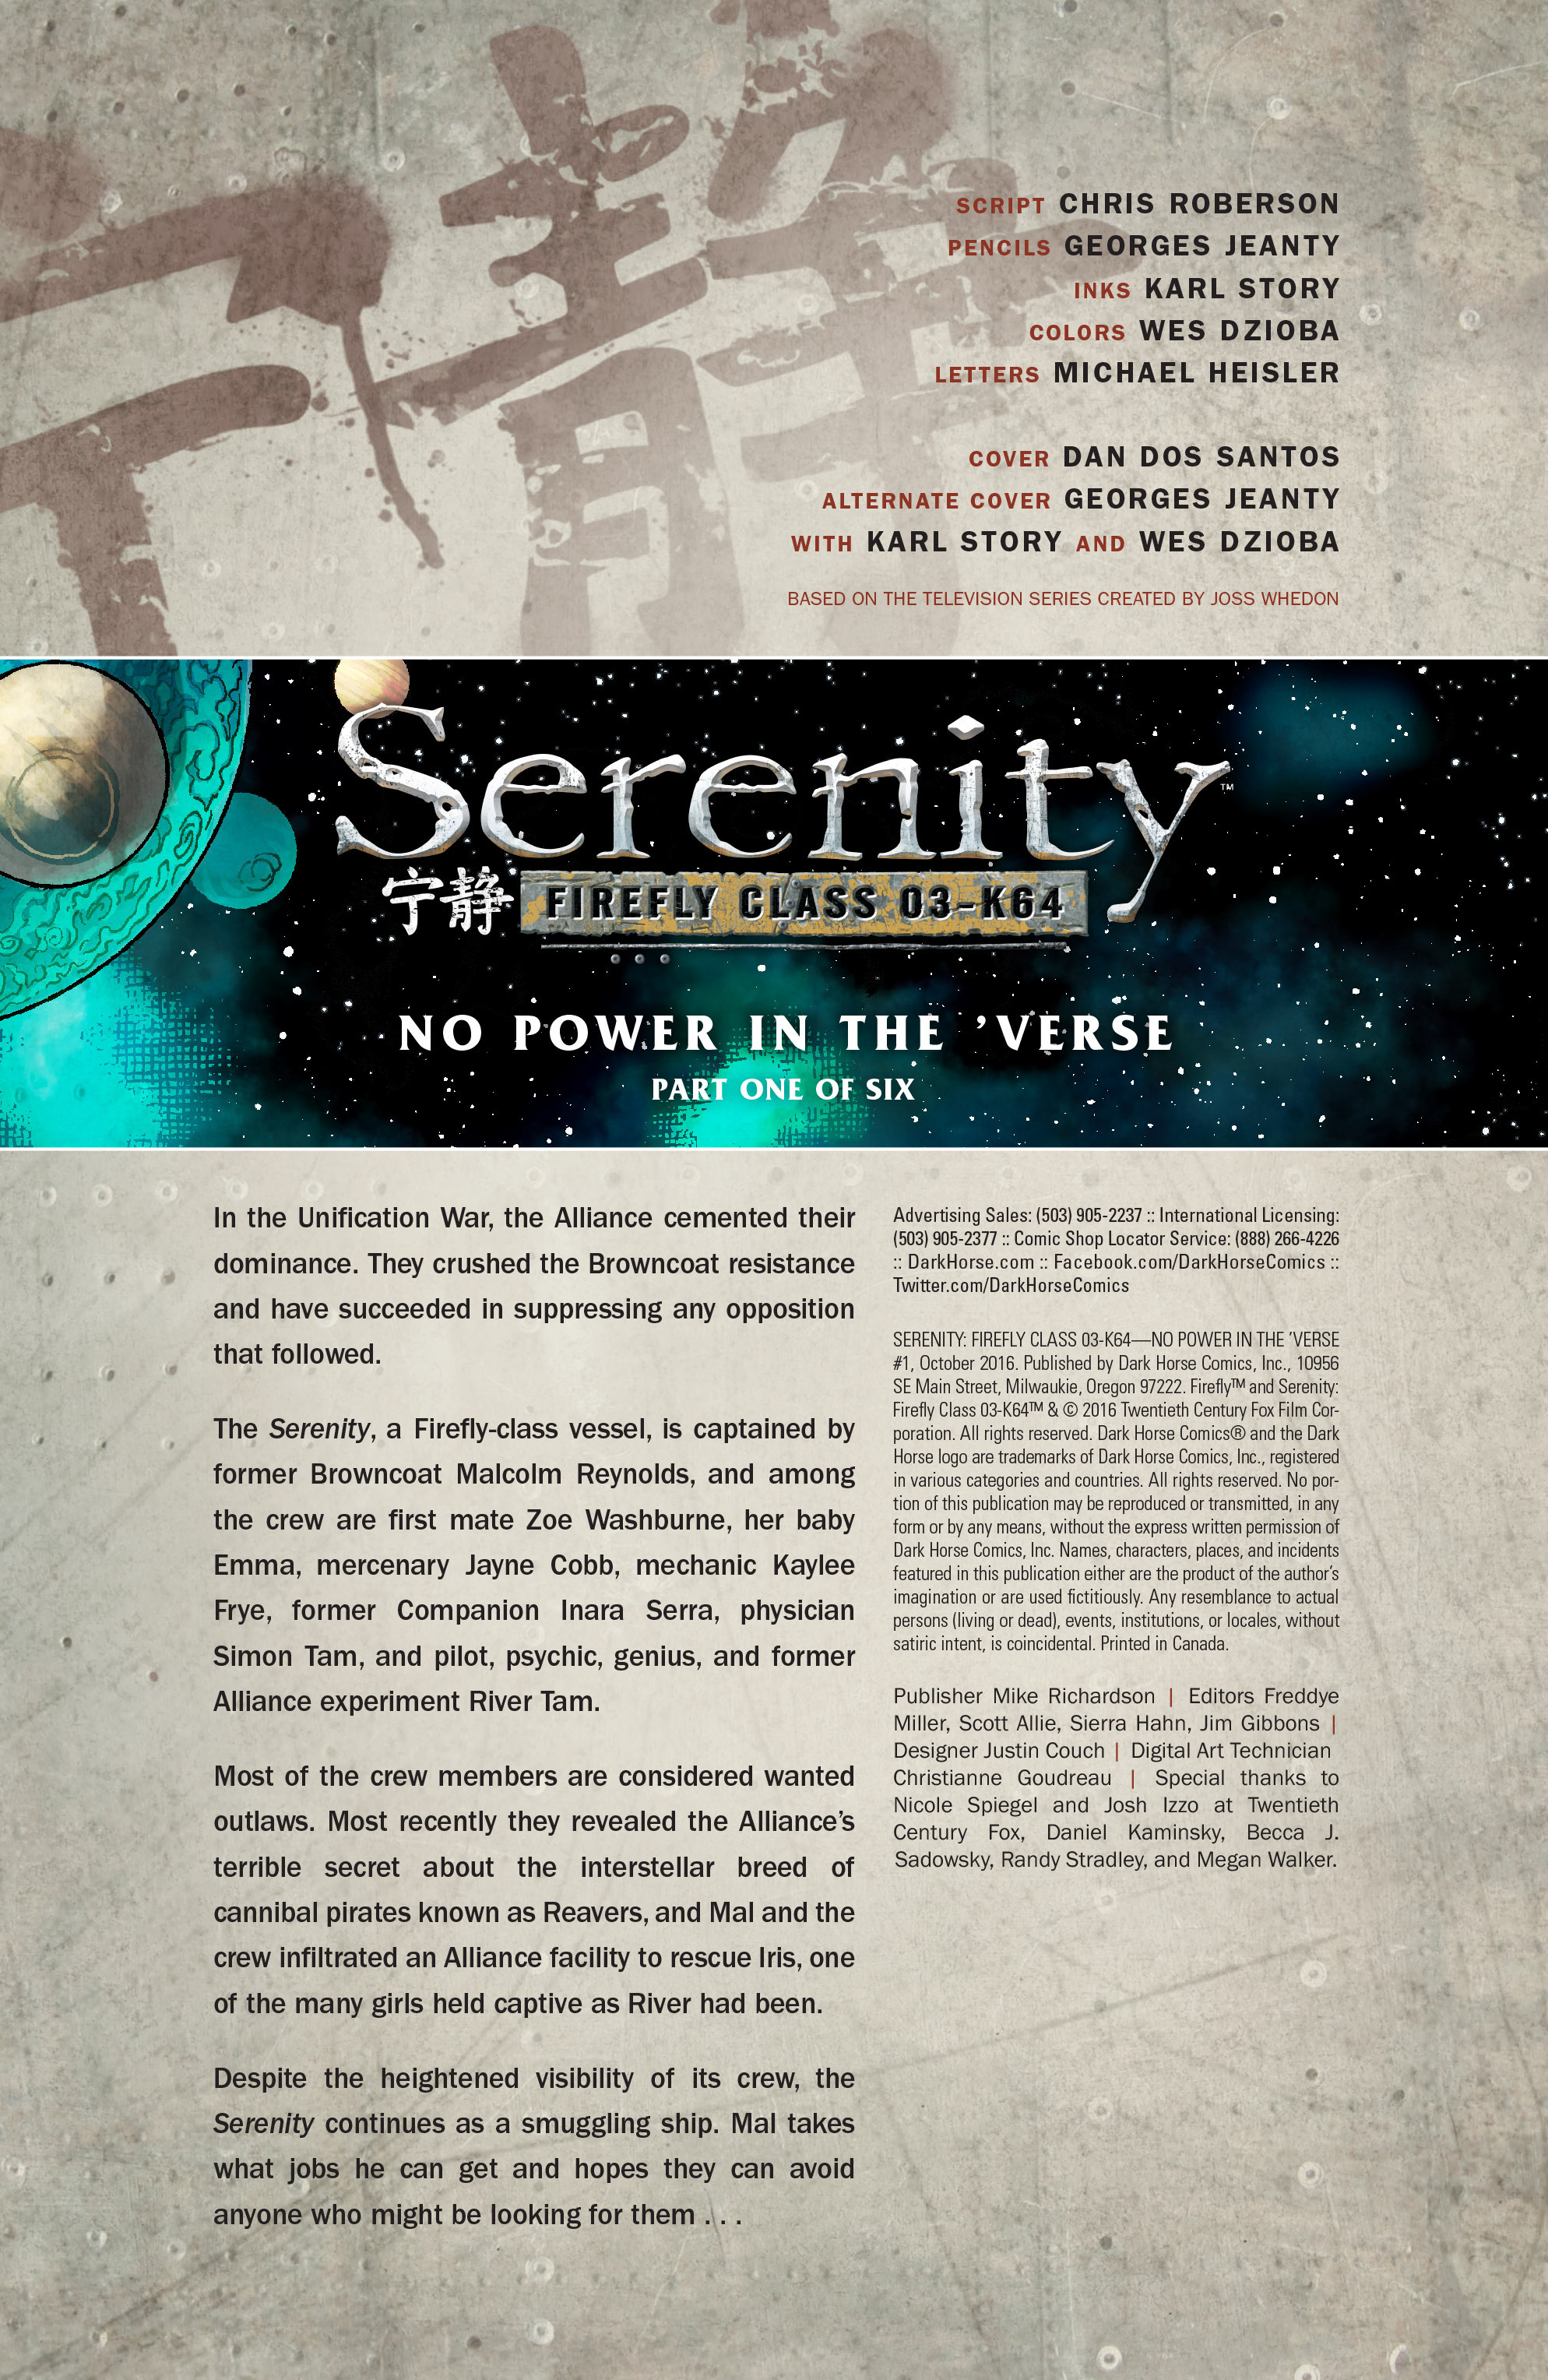 Read online Serenity: Firefly Class 03-K64 – No Power in the 'Verse comic -  Issue #1 - 7